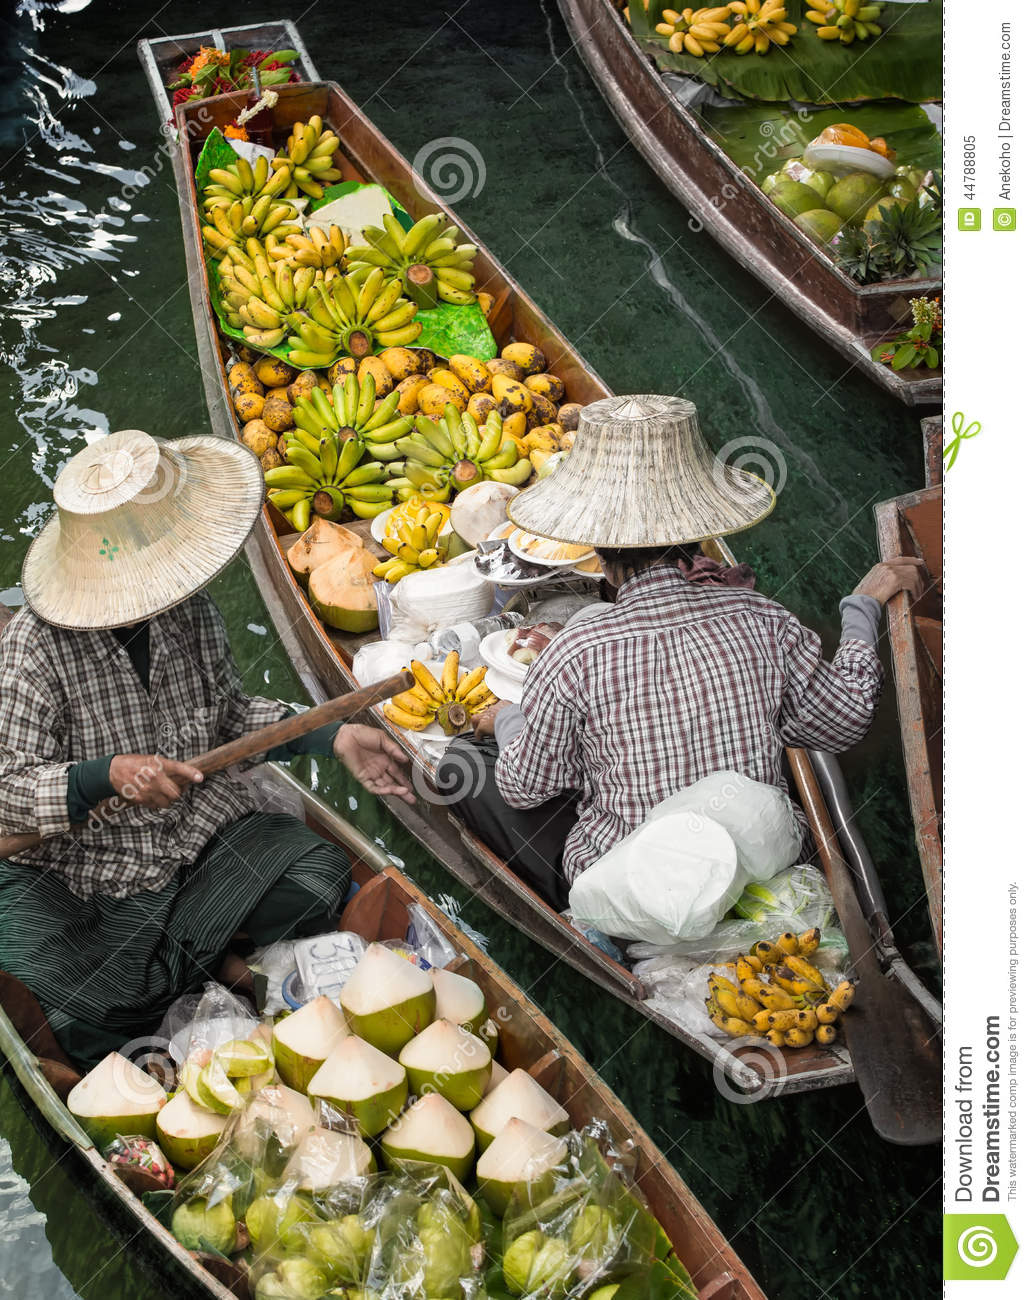 Ratchaburi Thailand  city pictures gallery : Traditional floating wood market in Ratchaburi Thailand.